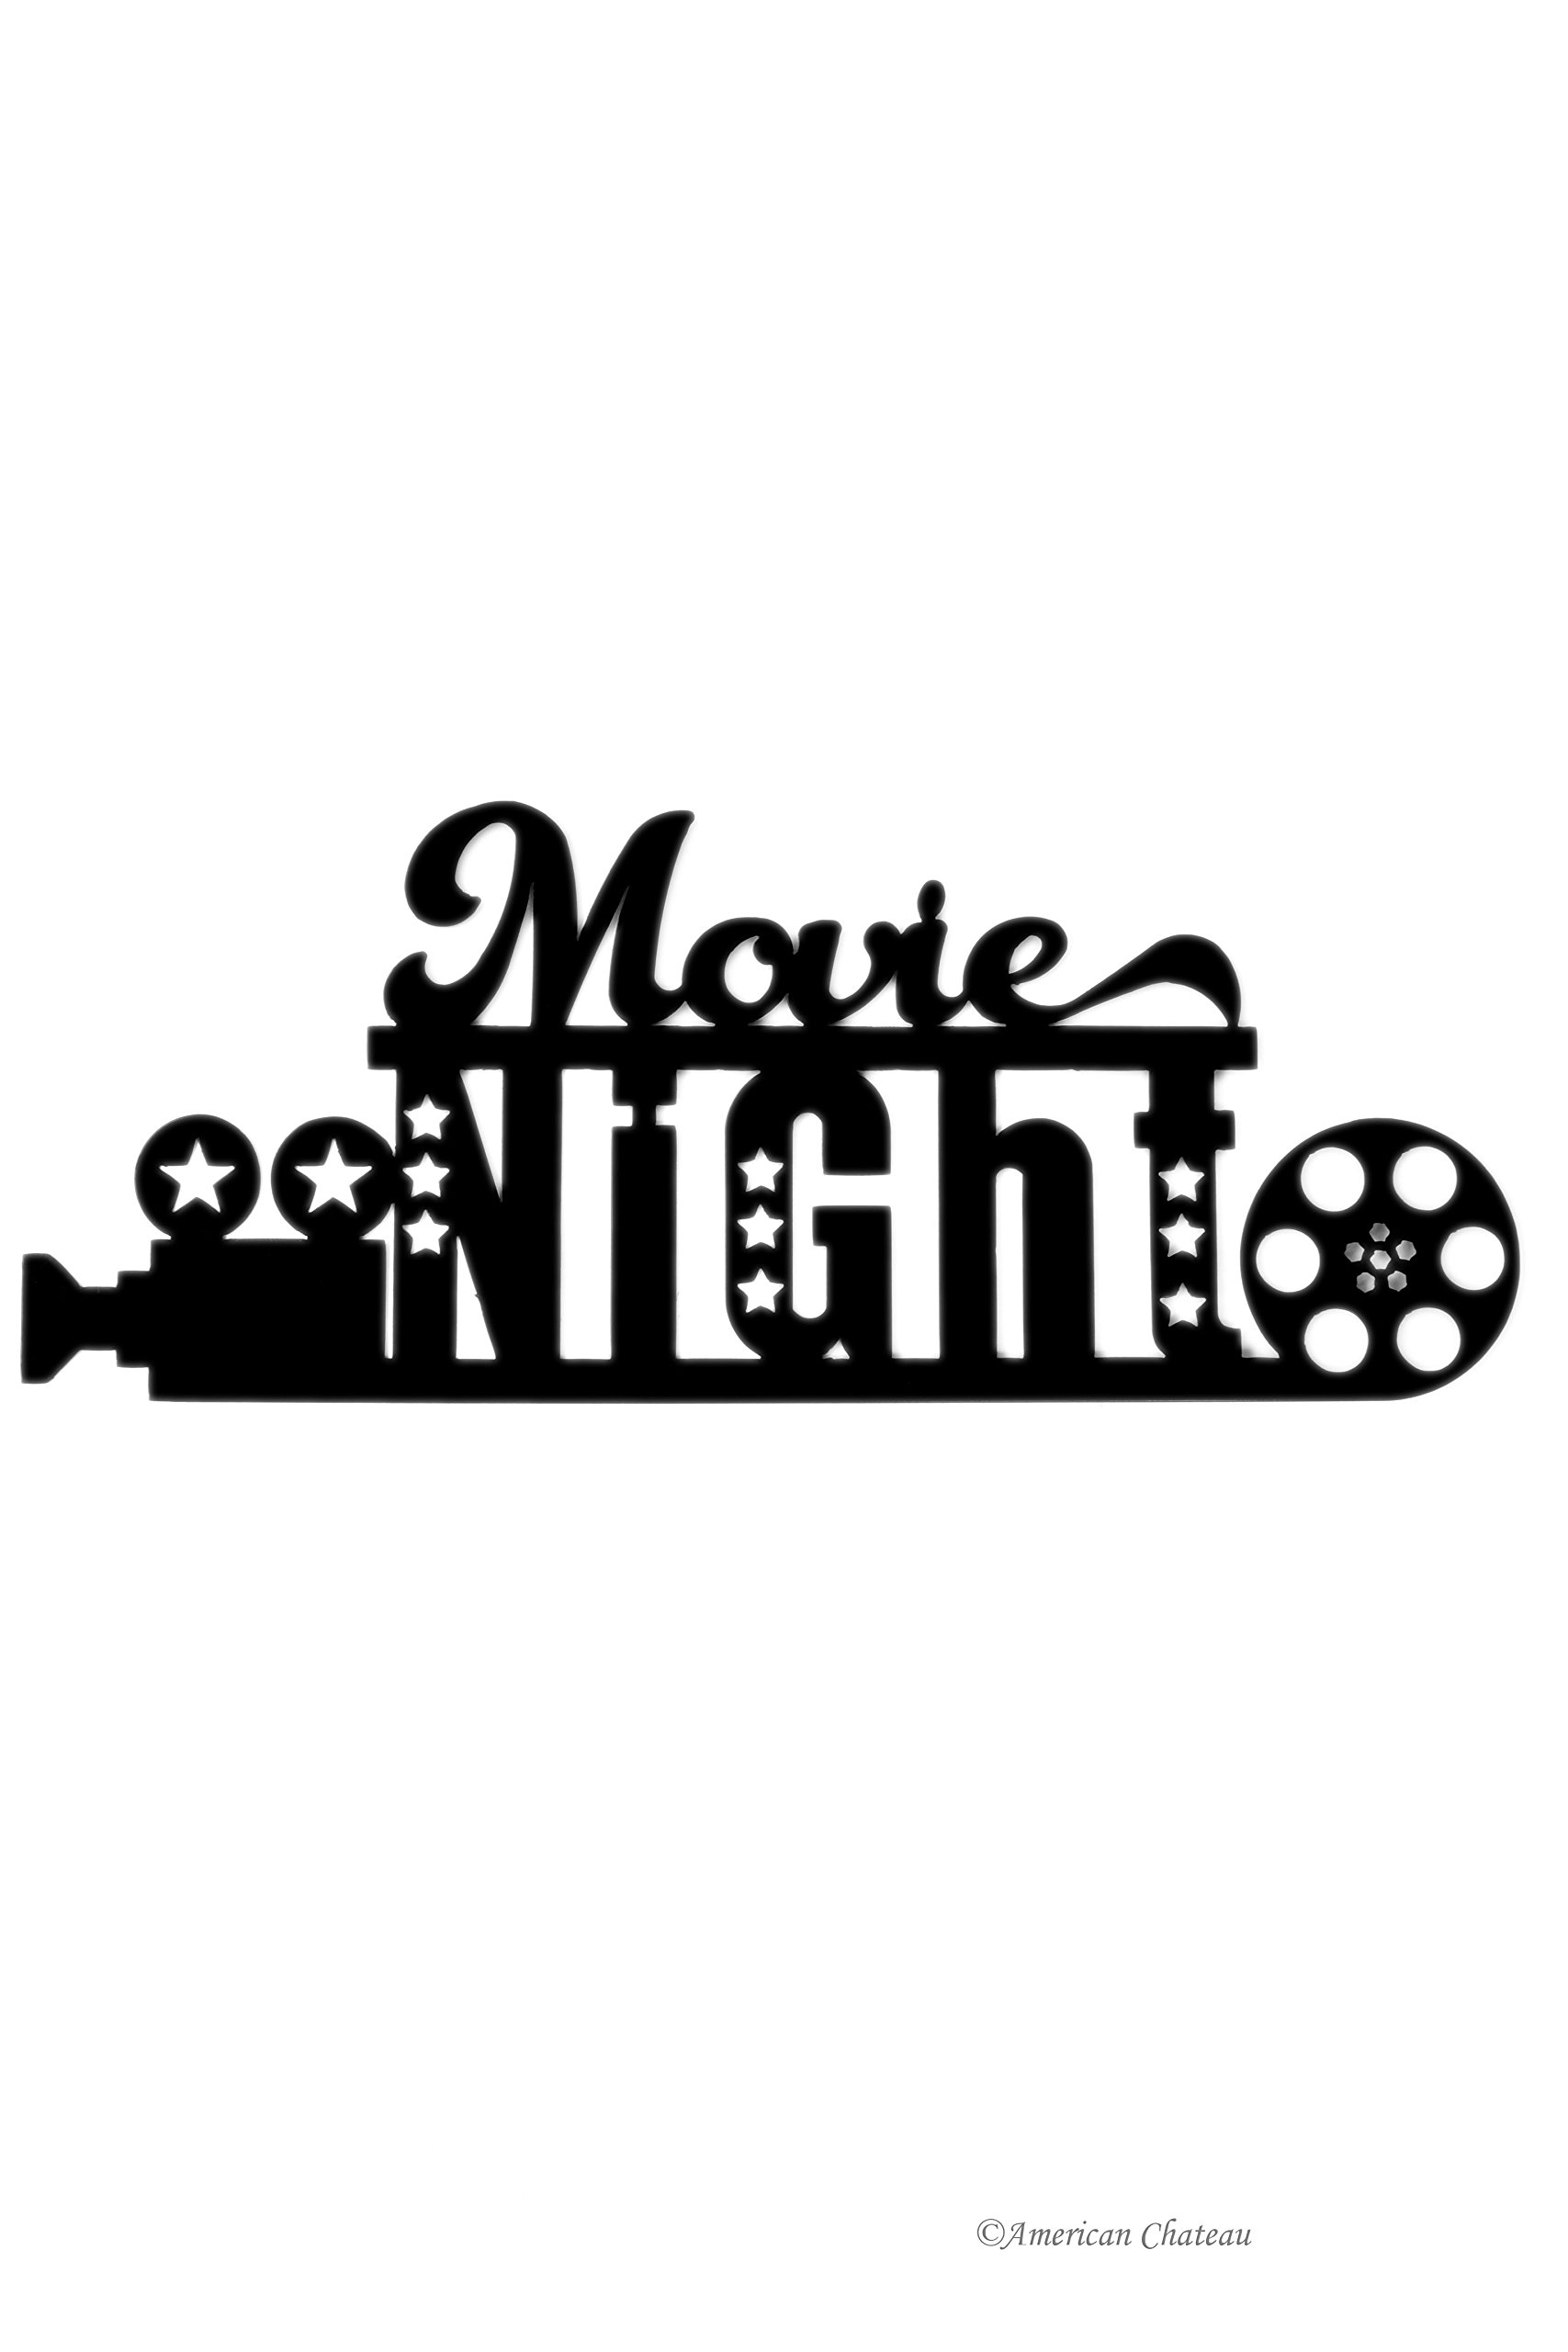 American Chateau Large Black 24'' Cinema Theatre Movie Night Room Plaque Sign Wall Hanging Decor by American Chateau